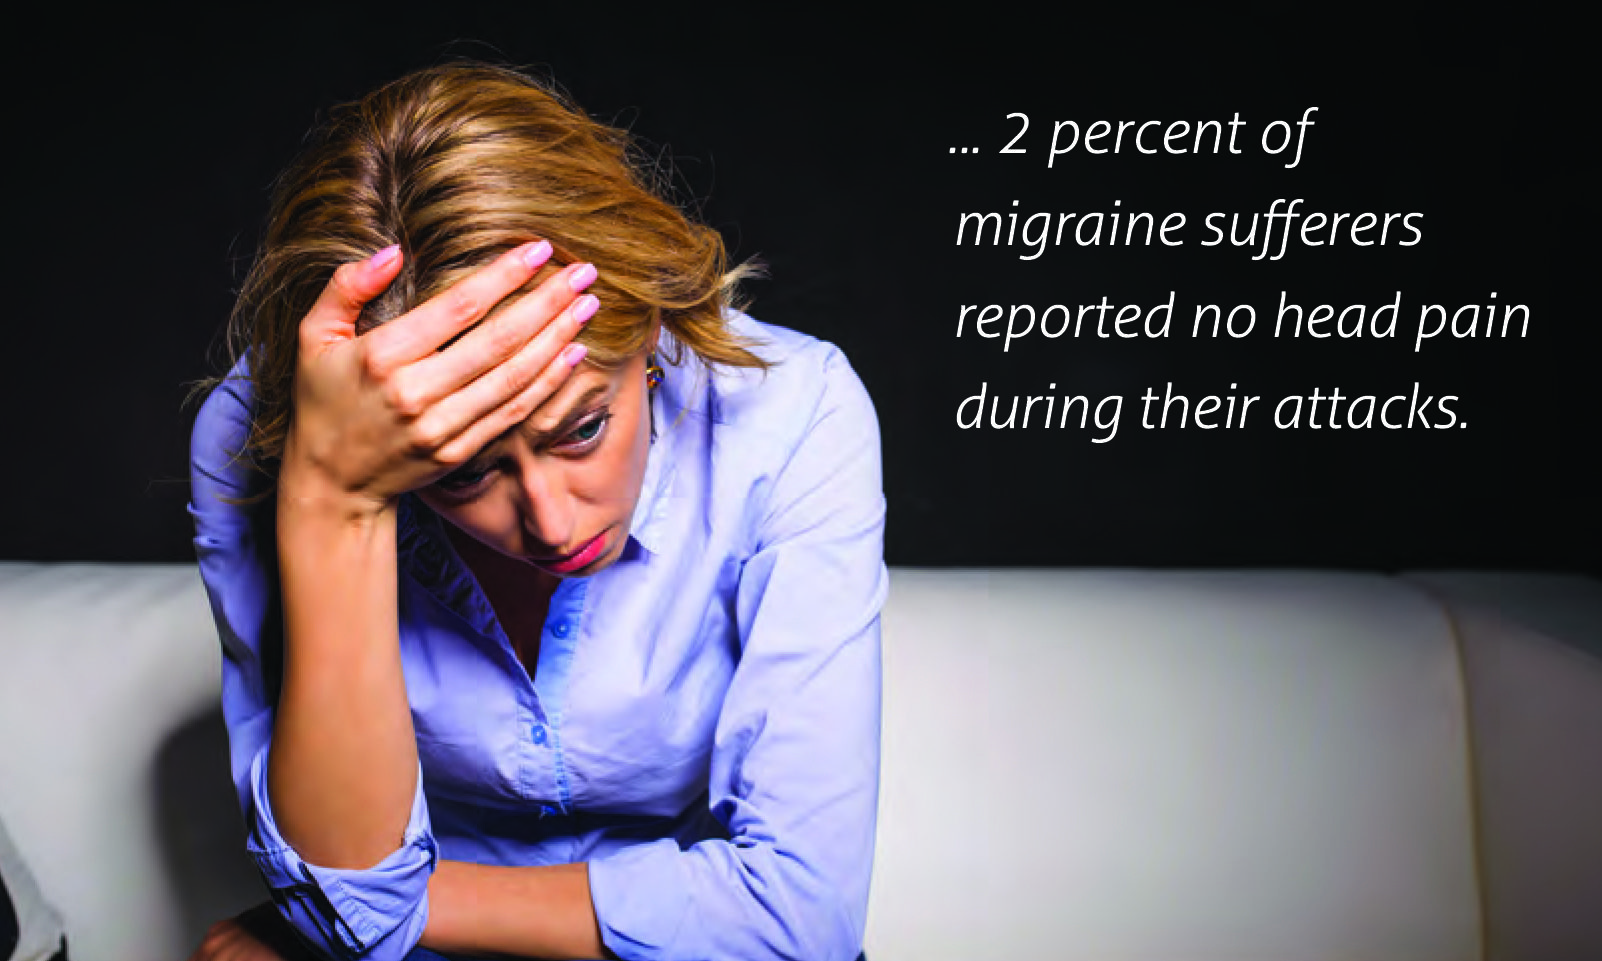 Migraines: The sufferer & the family